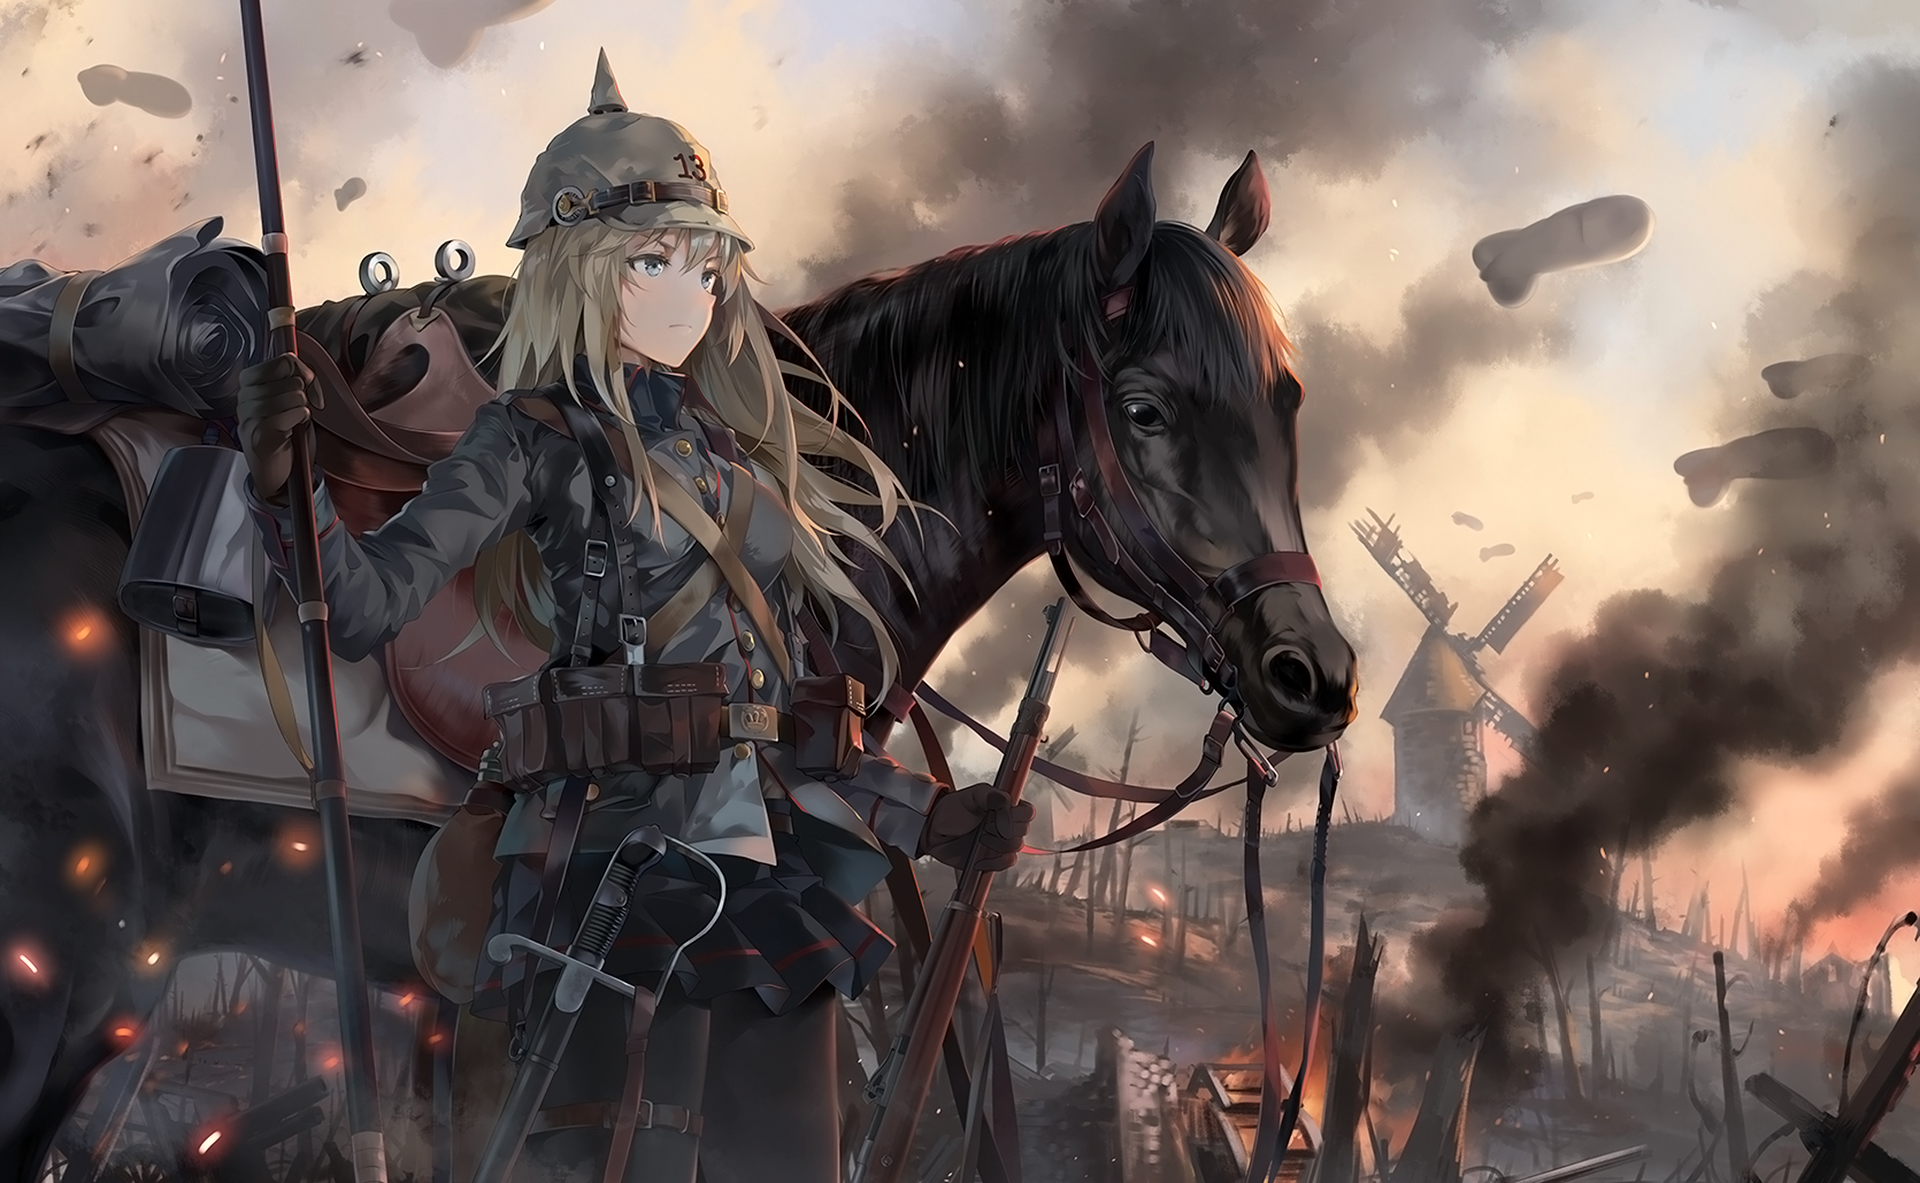 Military Anime Wallpapers Hd Quotes Backgrounds With Art: Original HD Wallpaper